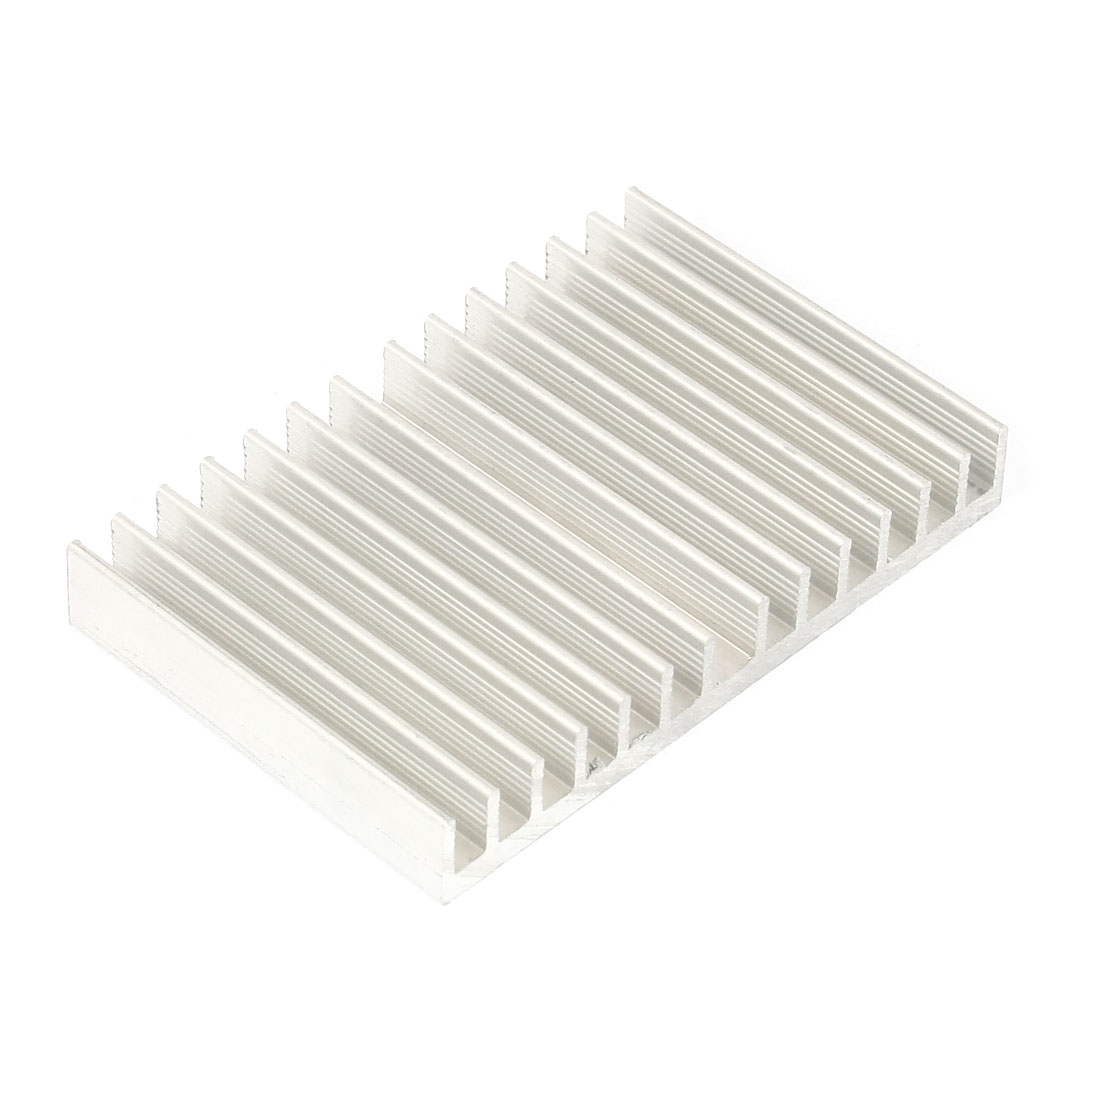 Silver White 78mmx50mmx11mm LED Heat Sink Aluminum Cooling Fin